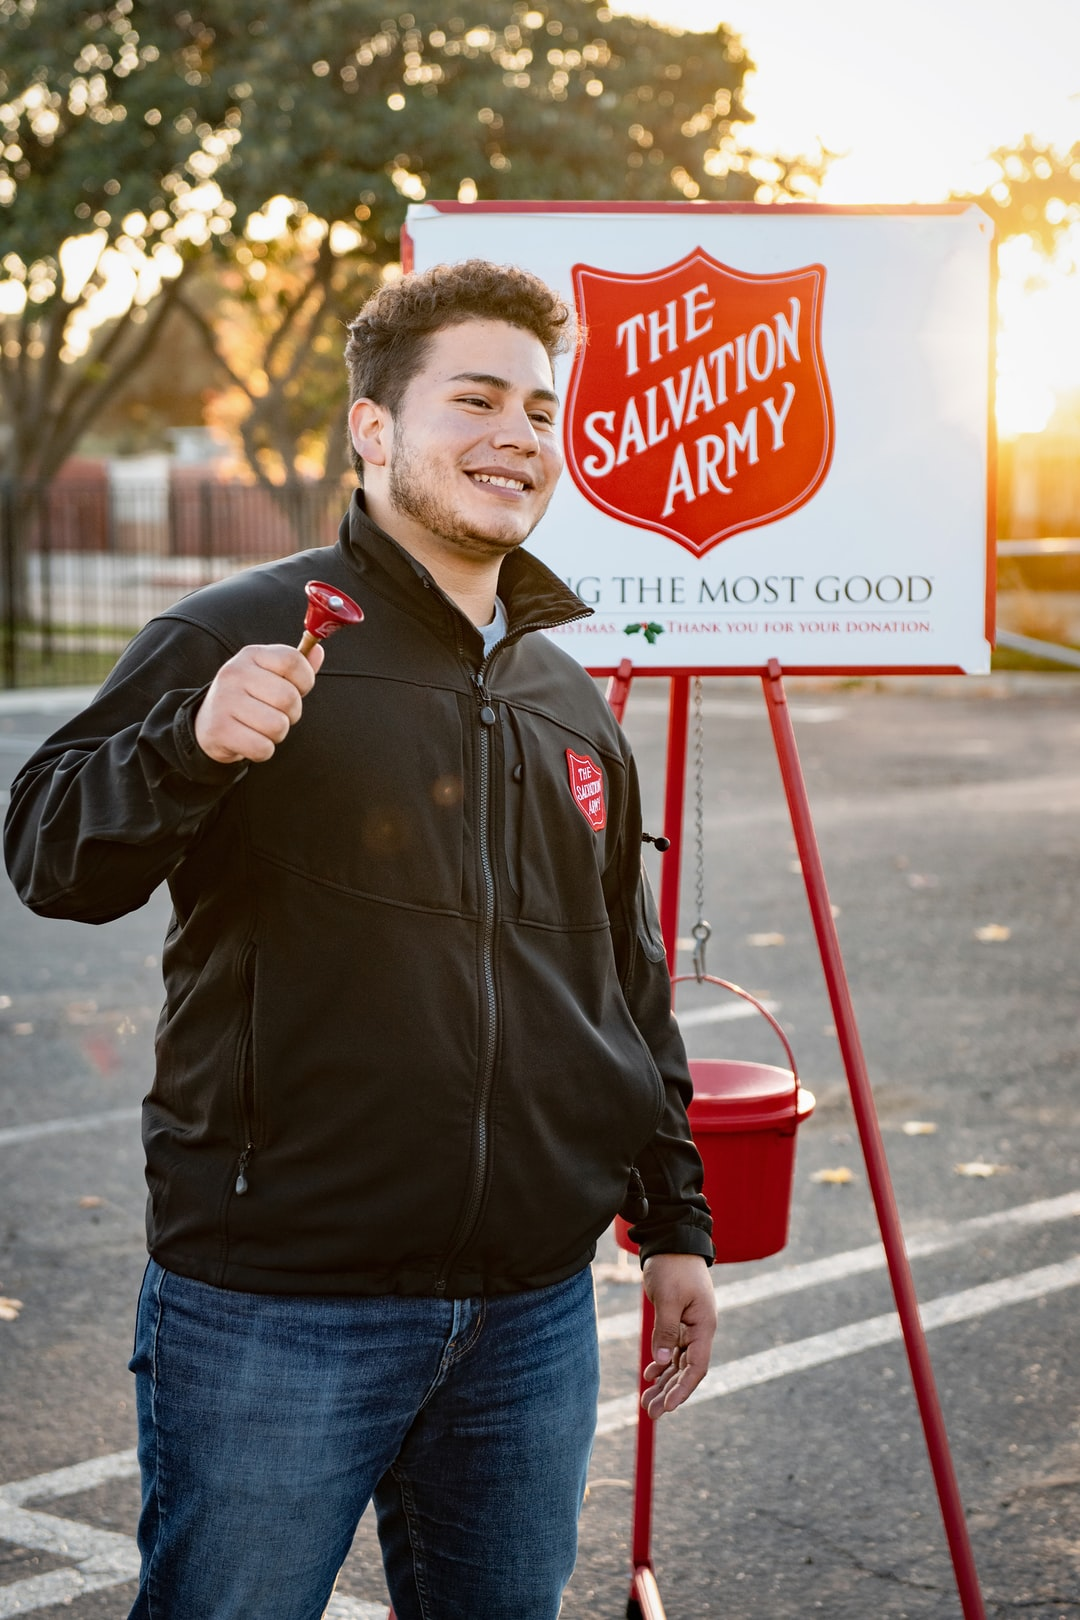 Doing the most good. Since 1865 the Salvation Army has been caring for the neediest of people in over 130 countries around the world. If you hear their bell ring this Christmas, find a way to give them your support.